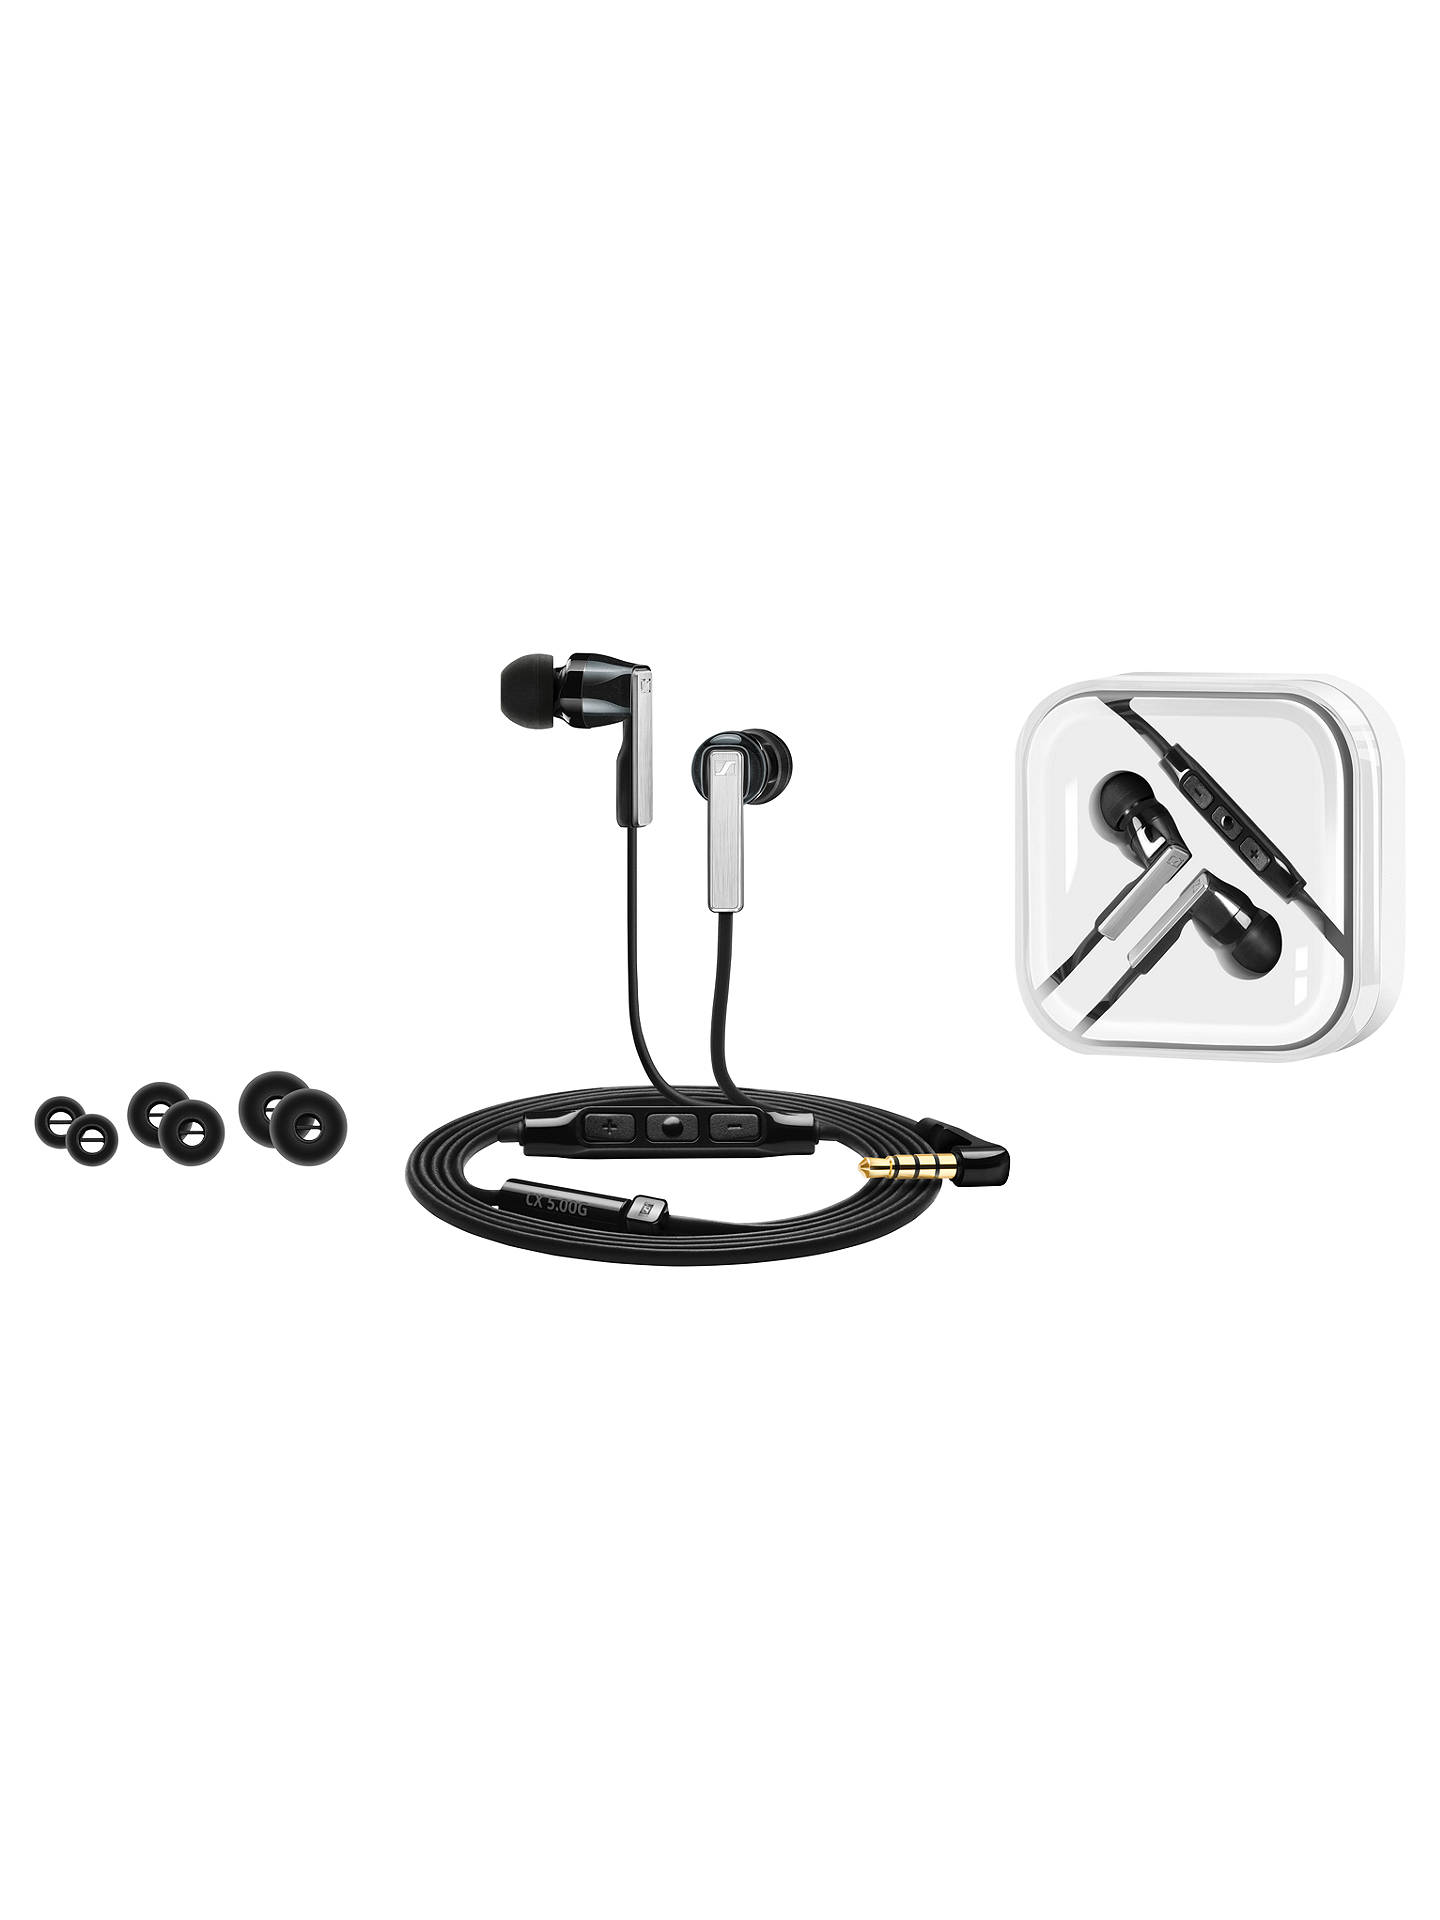 BuySennheiser CX 5.00 I In-Ear Headphones with Mic/Remote, Black Online at johnlewis.com